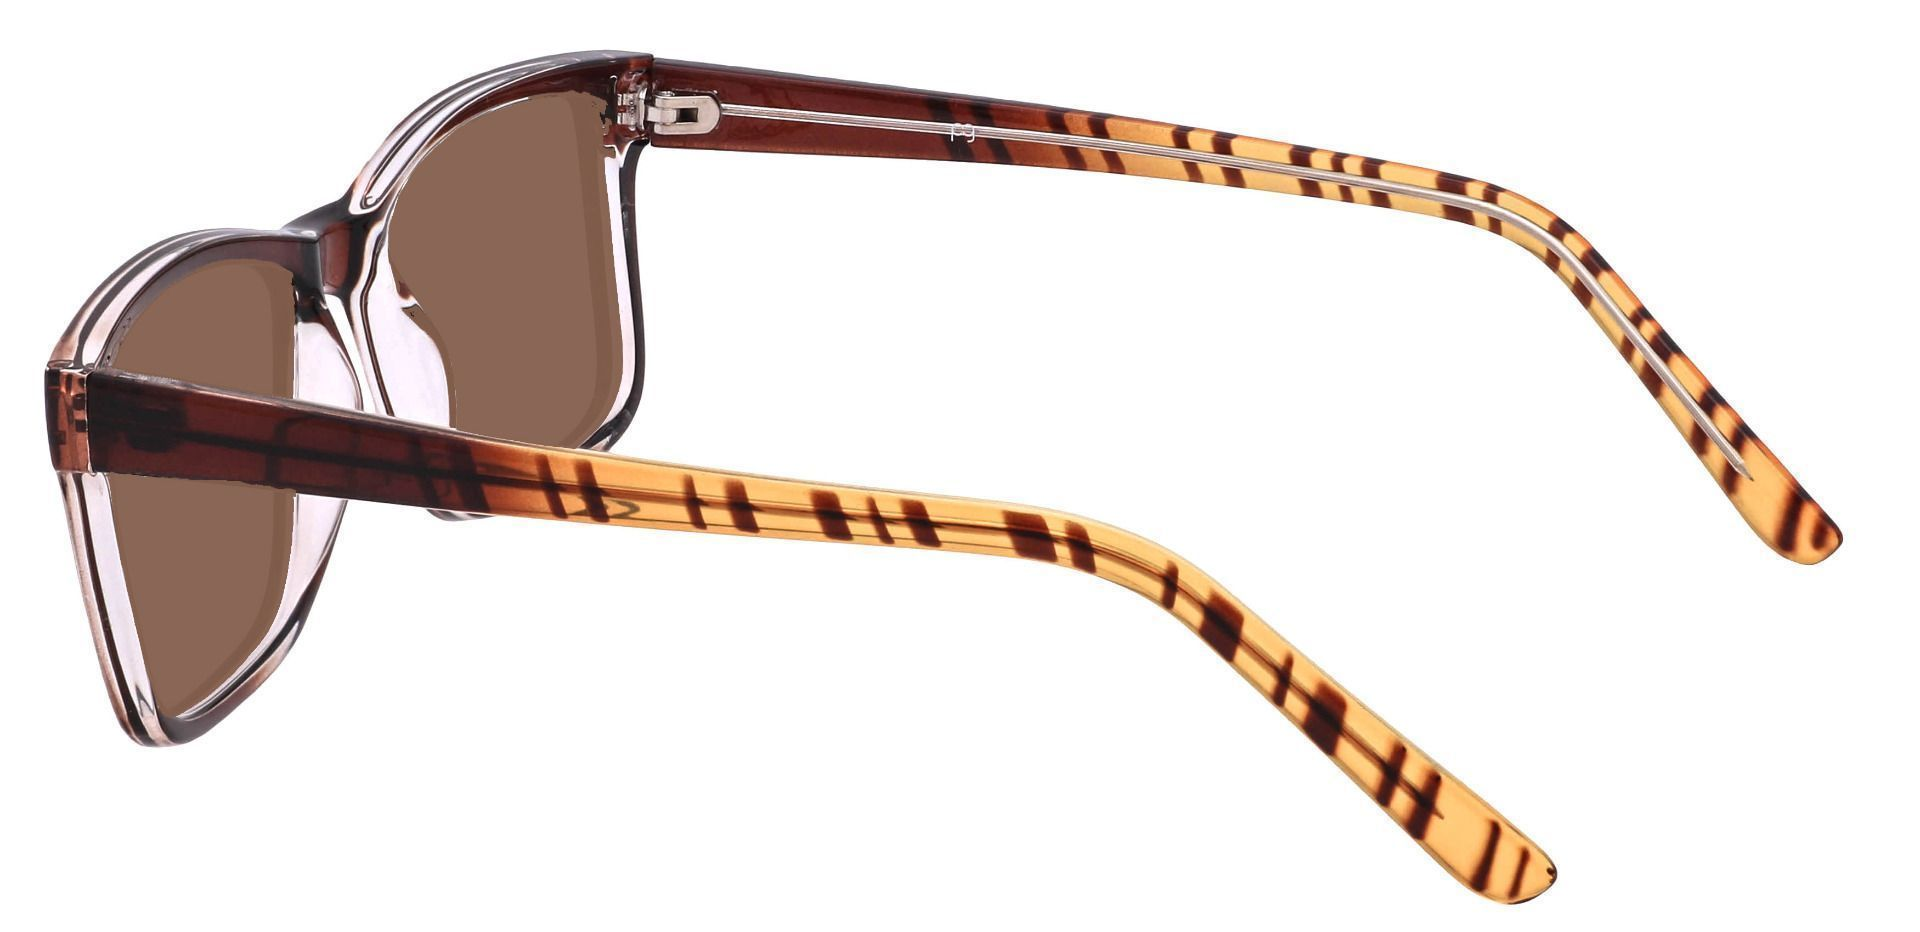 Bedford Rectangle Prescription Sunglasses - Brown Frame With Brown Lenses